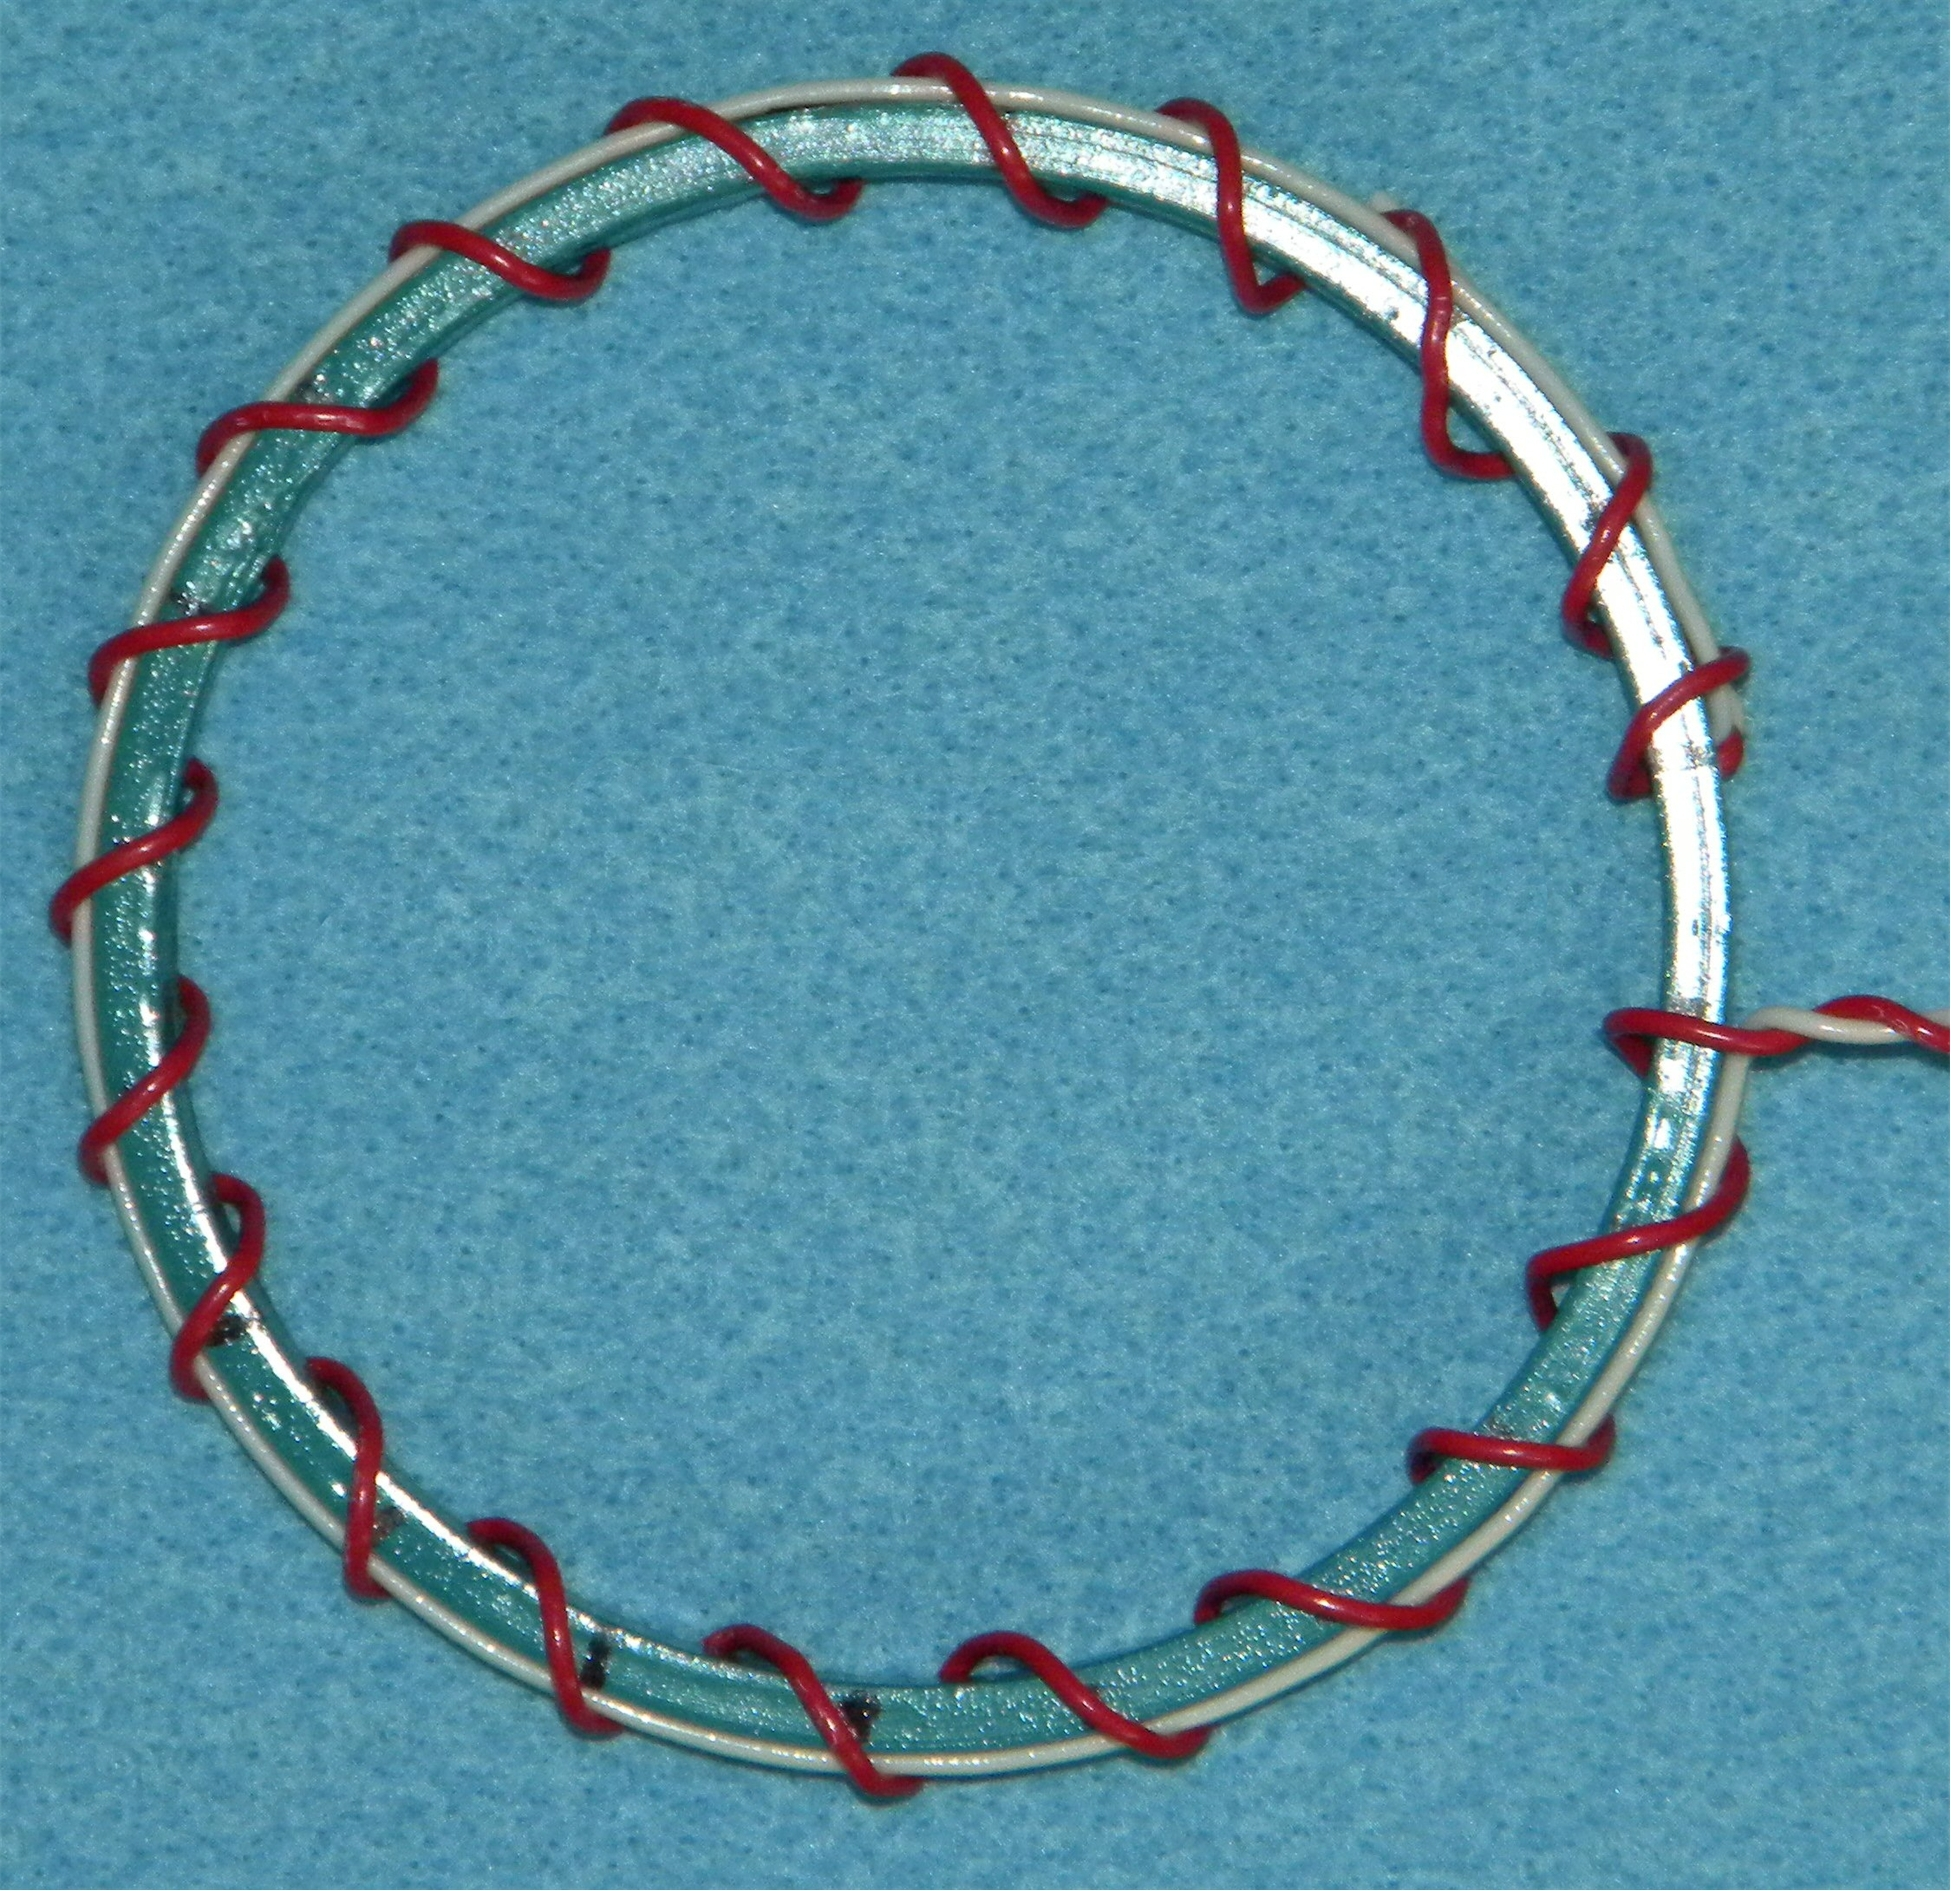 Experimentos electromagnéticos Toroidal_Inductor-Simple_with_Return_Wire